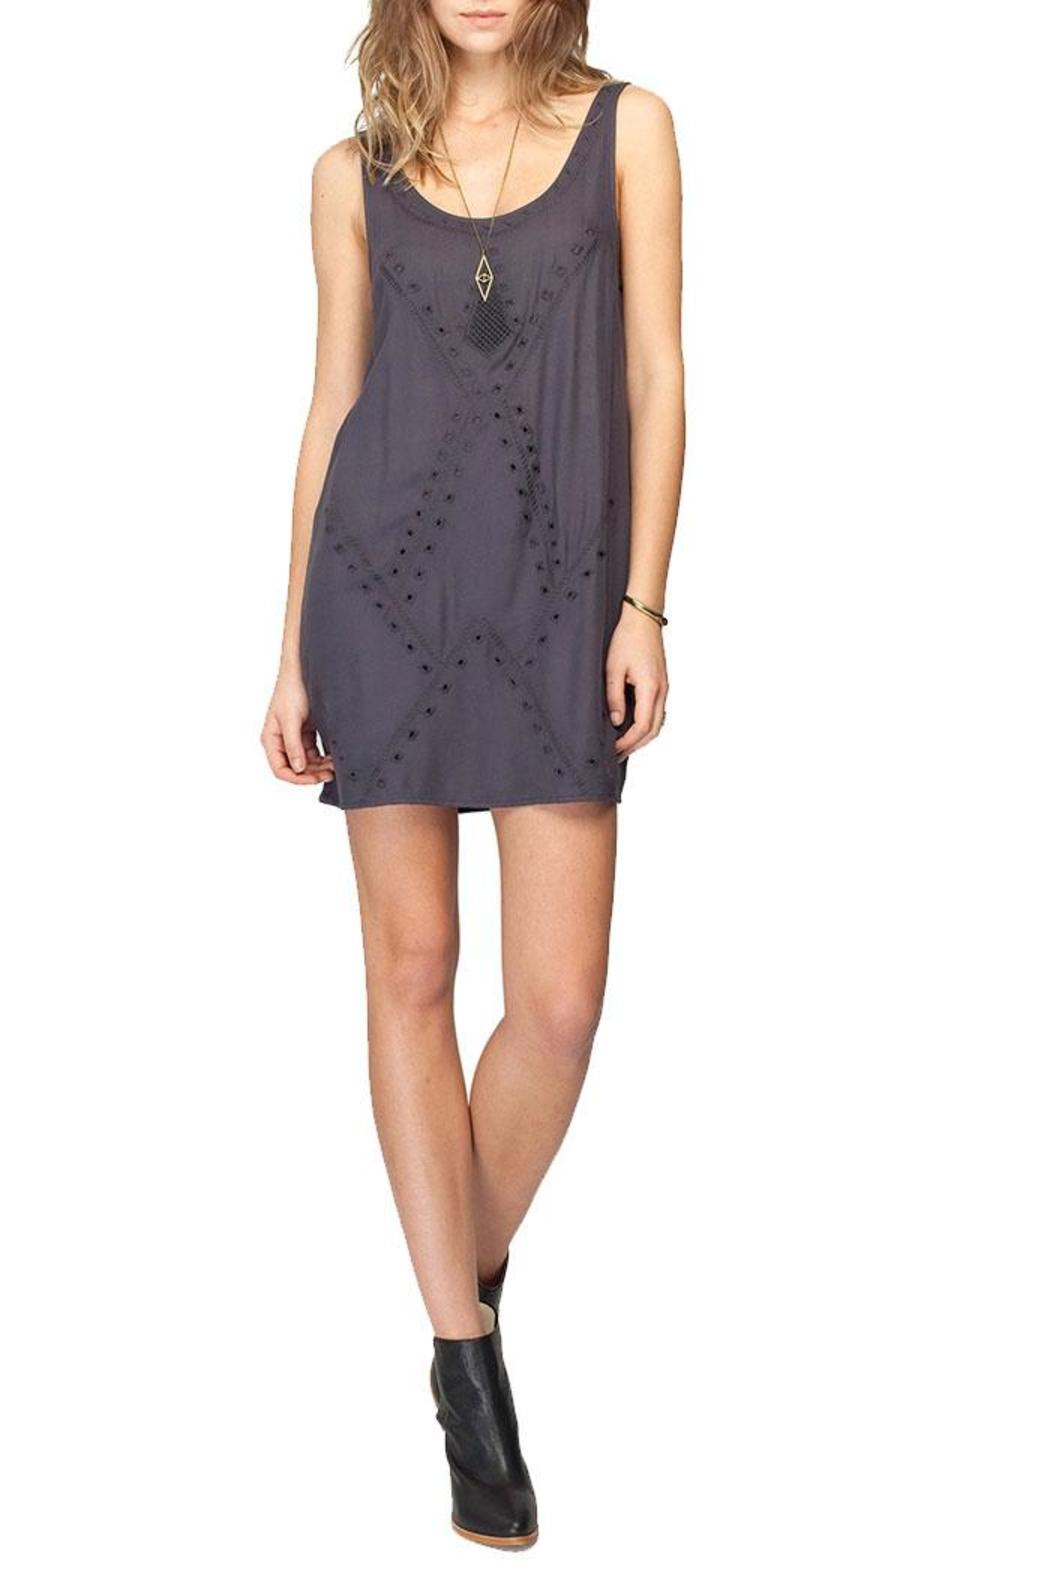 Gentle Fawn Alkaline Shift Dress - Front Cropped Image